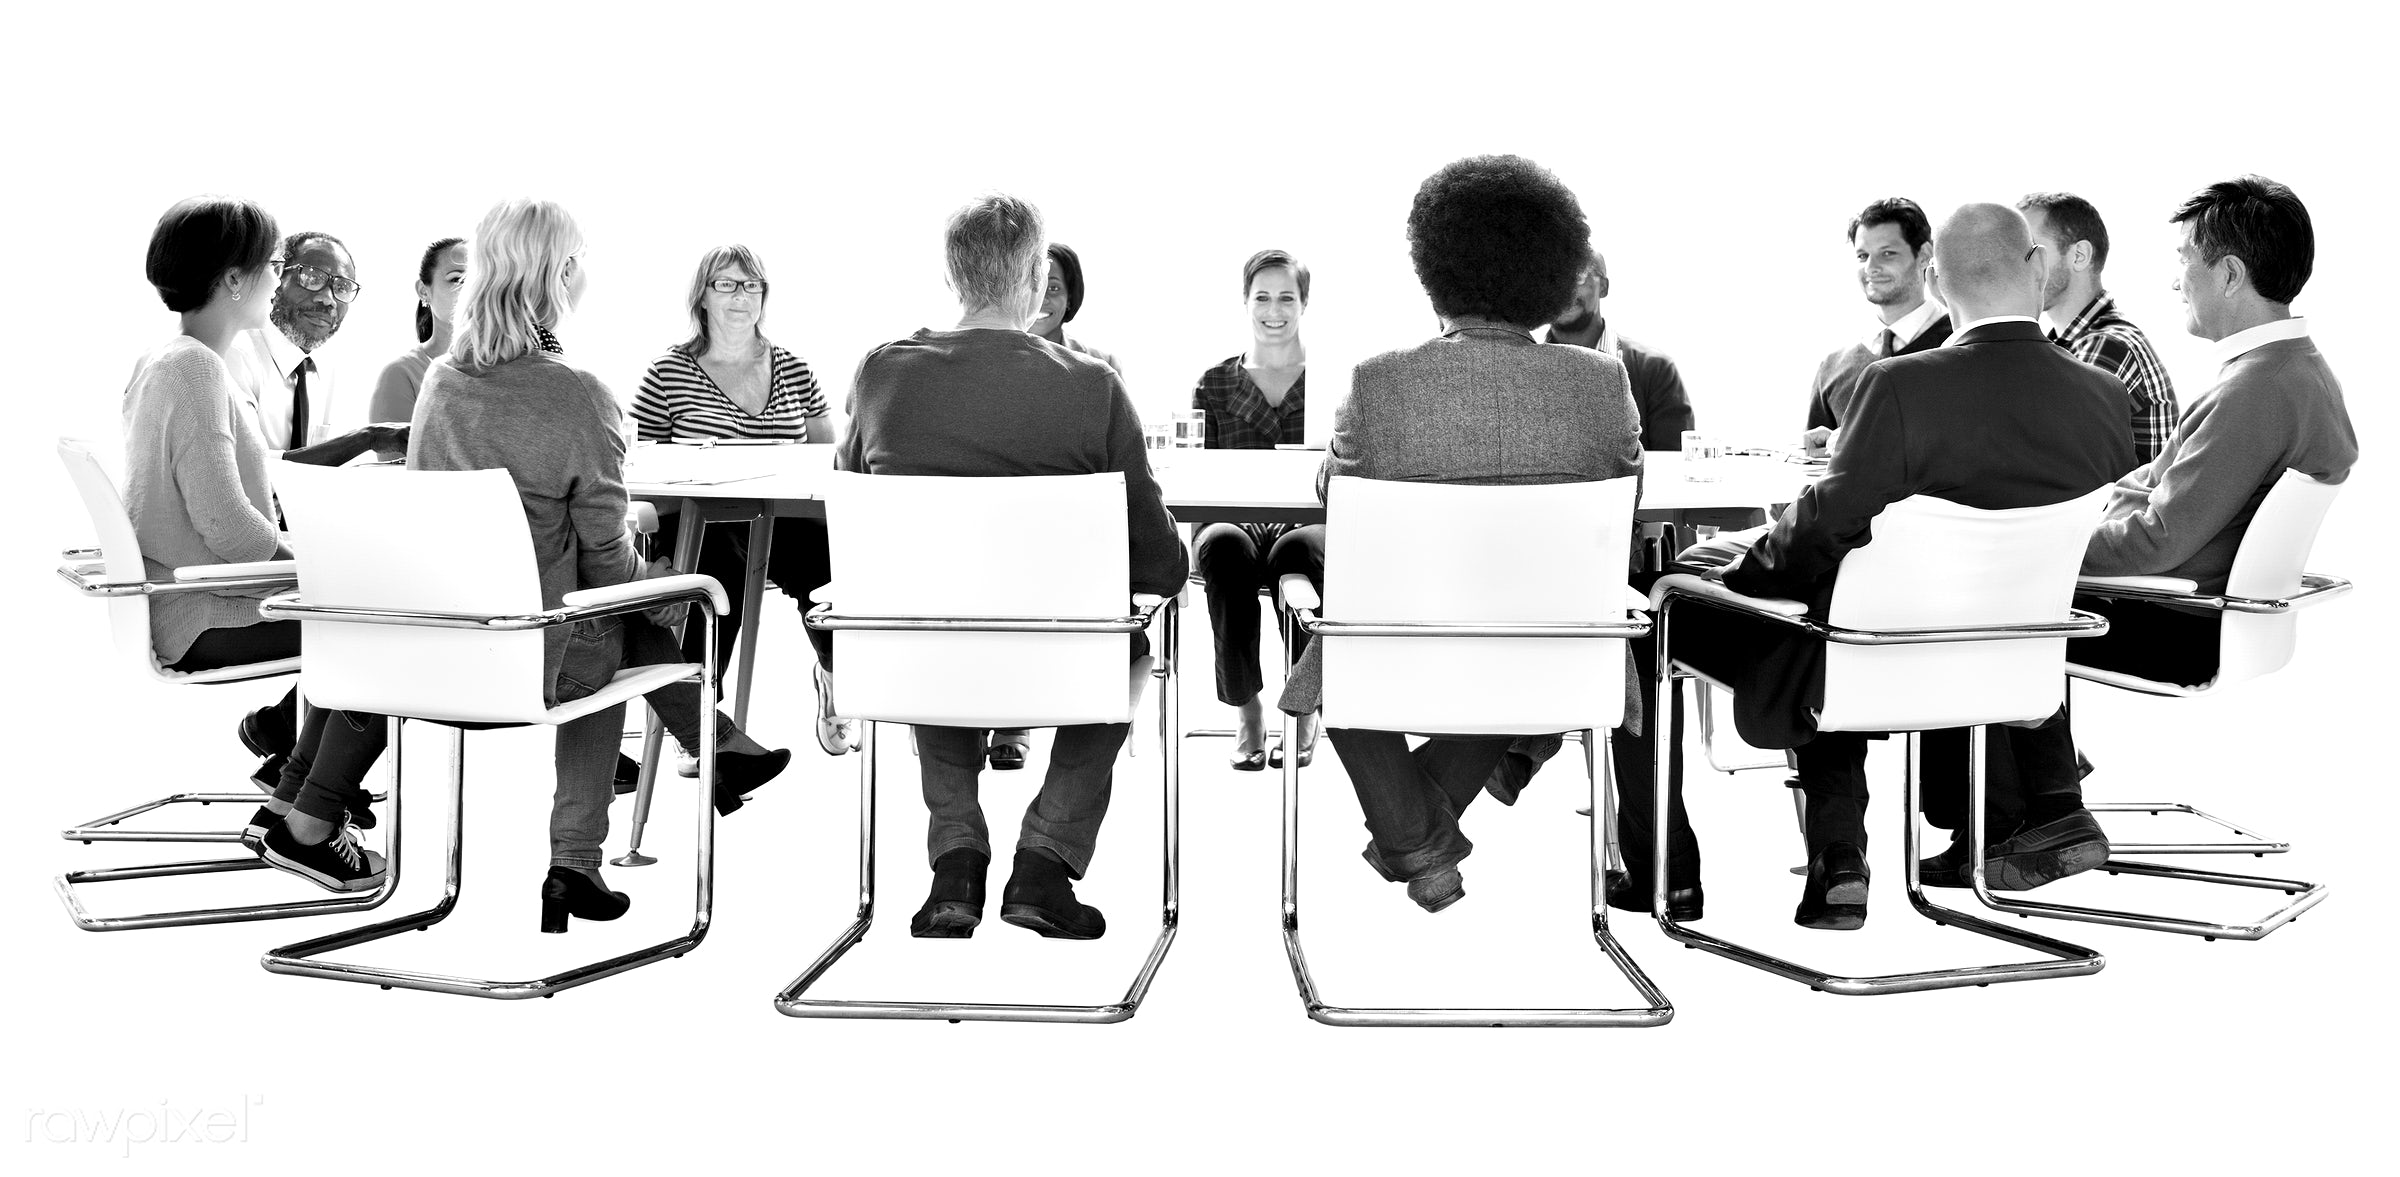 african descent, african ethnicity, asian ethnicity, board room, business, casual, classroom, communication, community,...